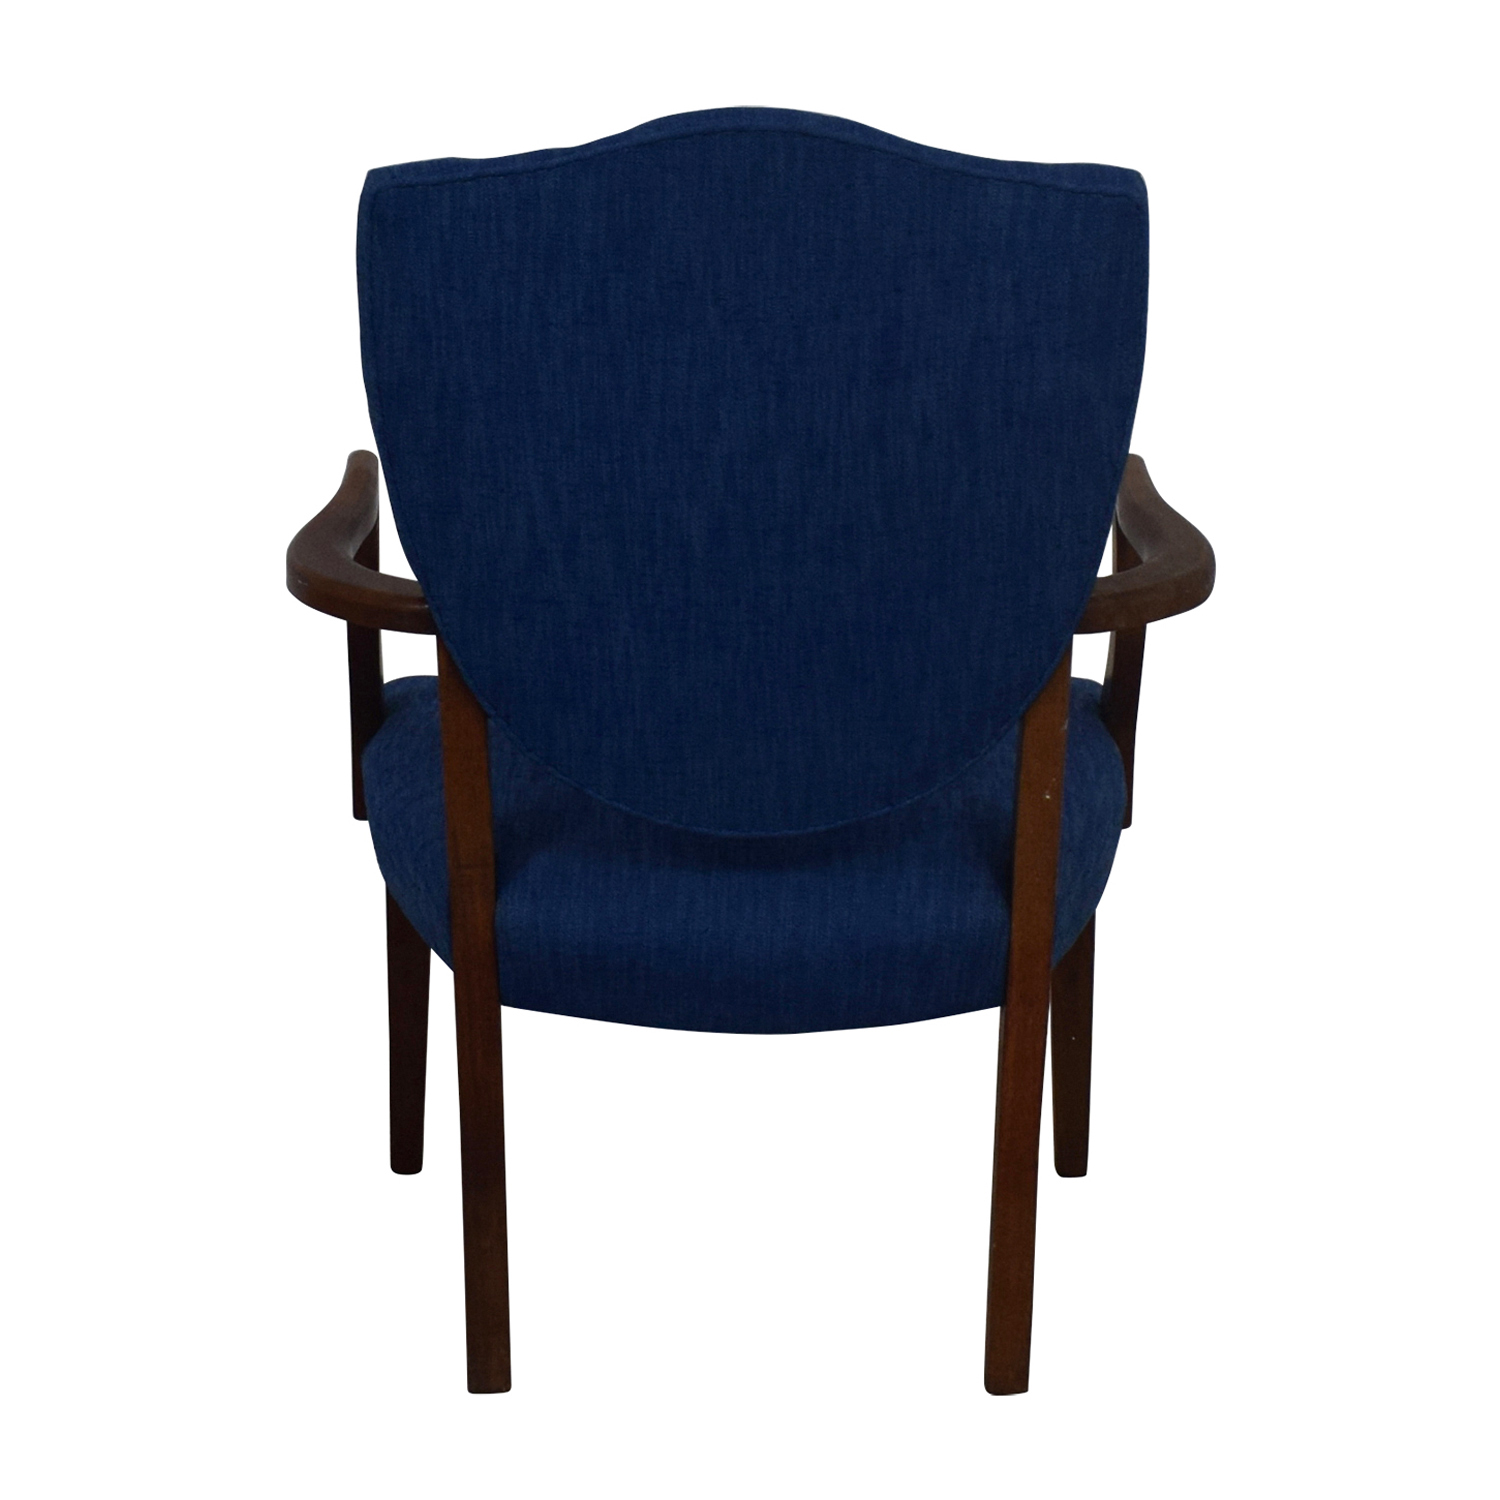 Antique Wood and Blue Upholstered Arm Chair